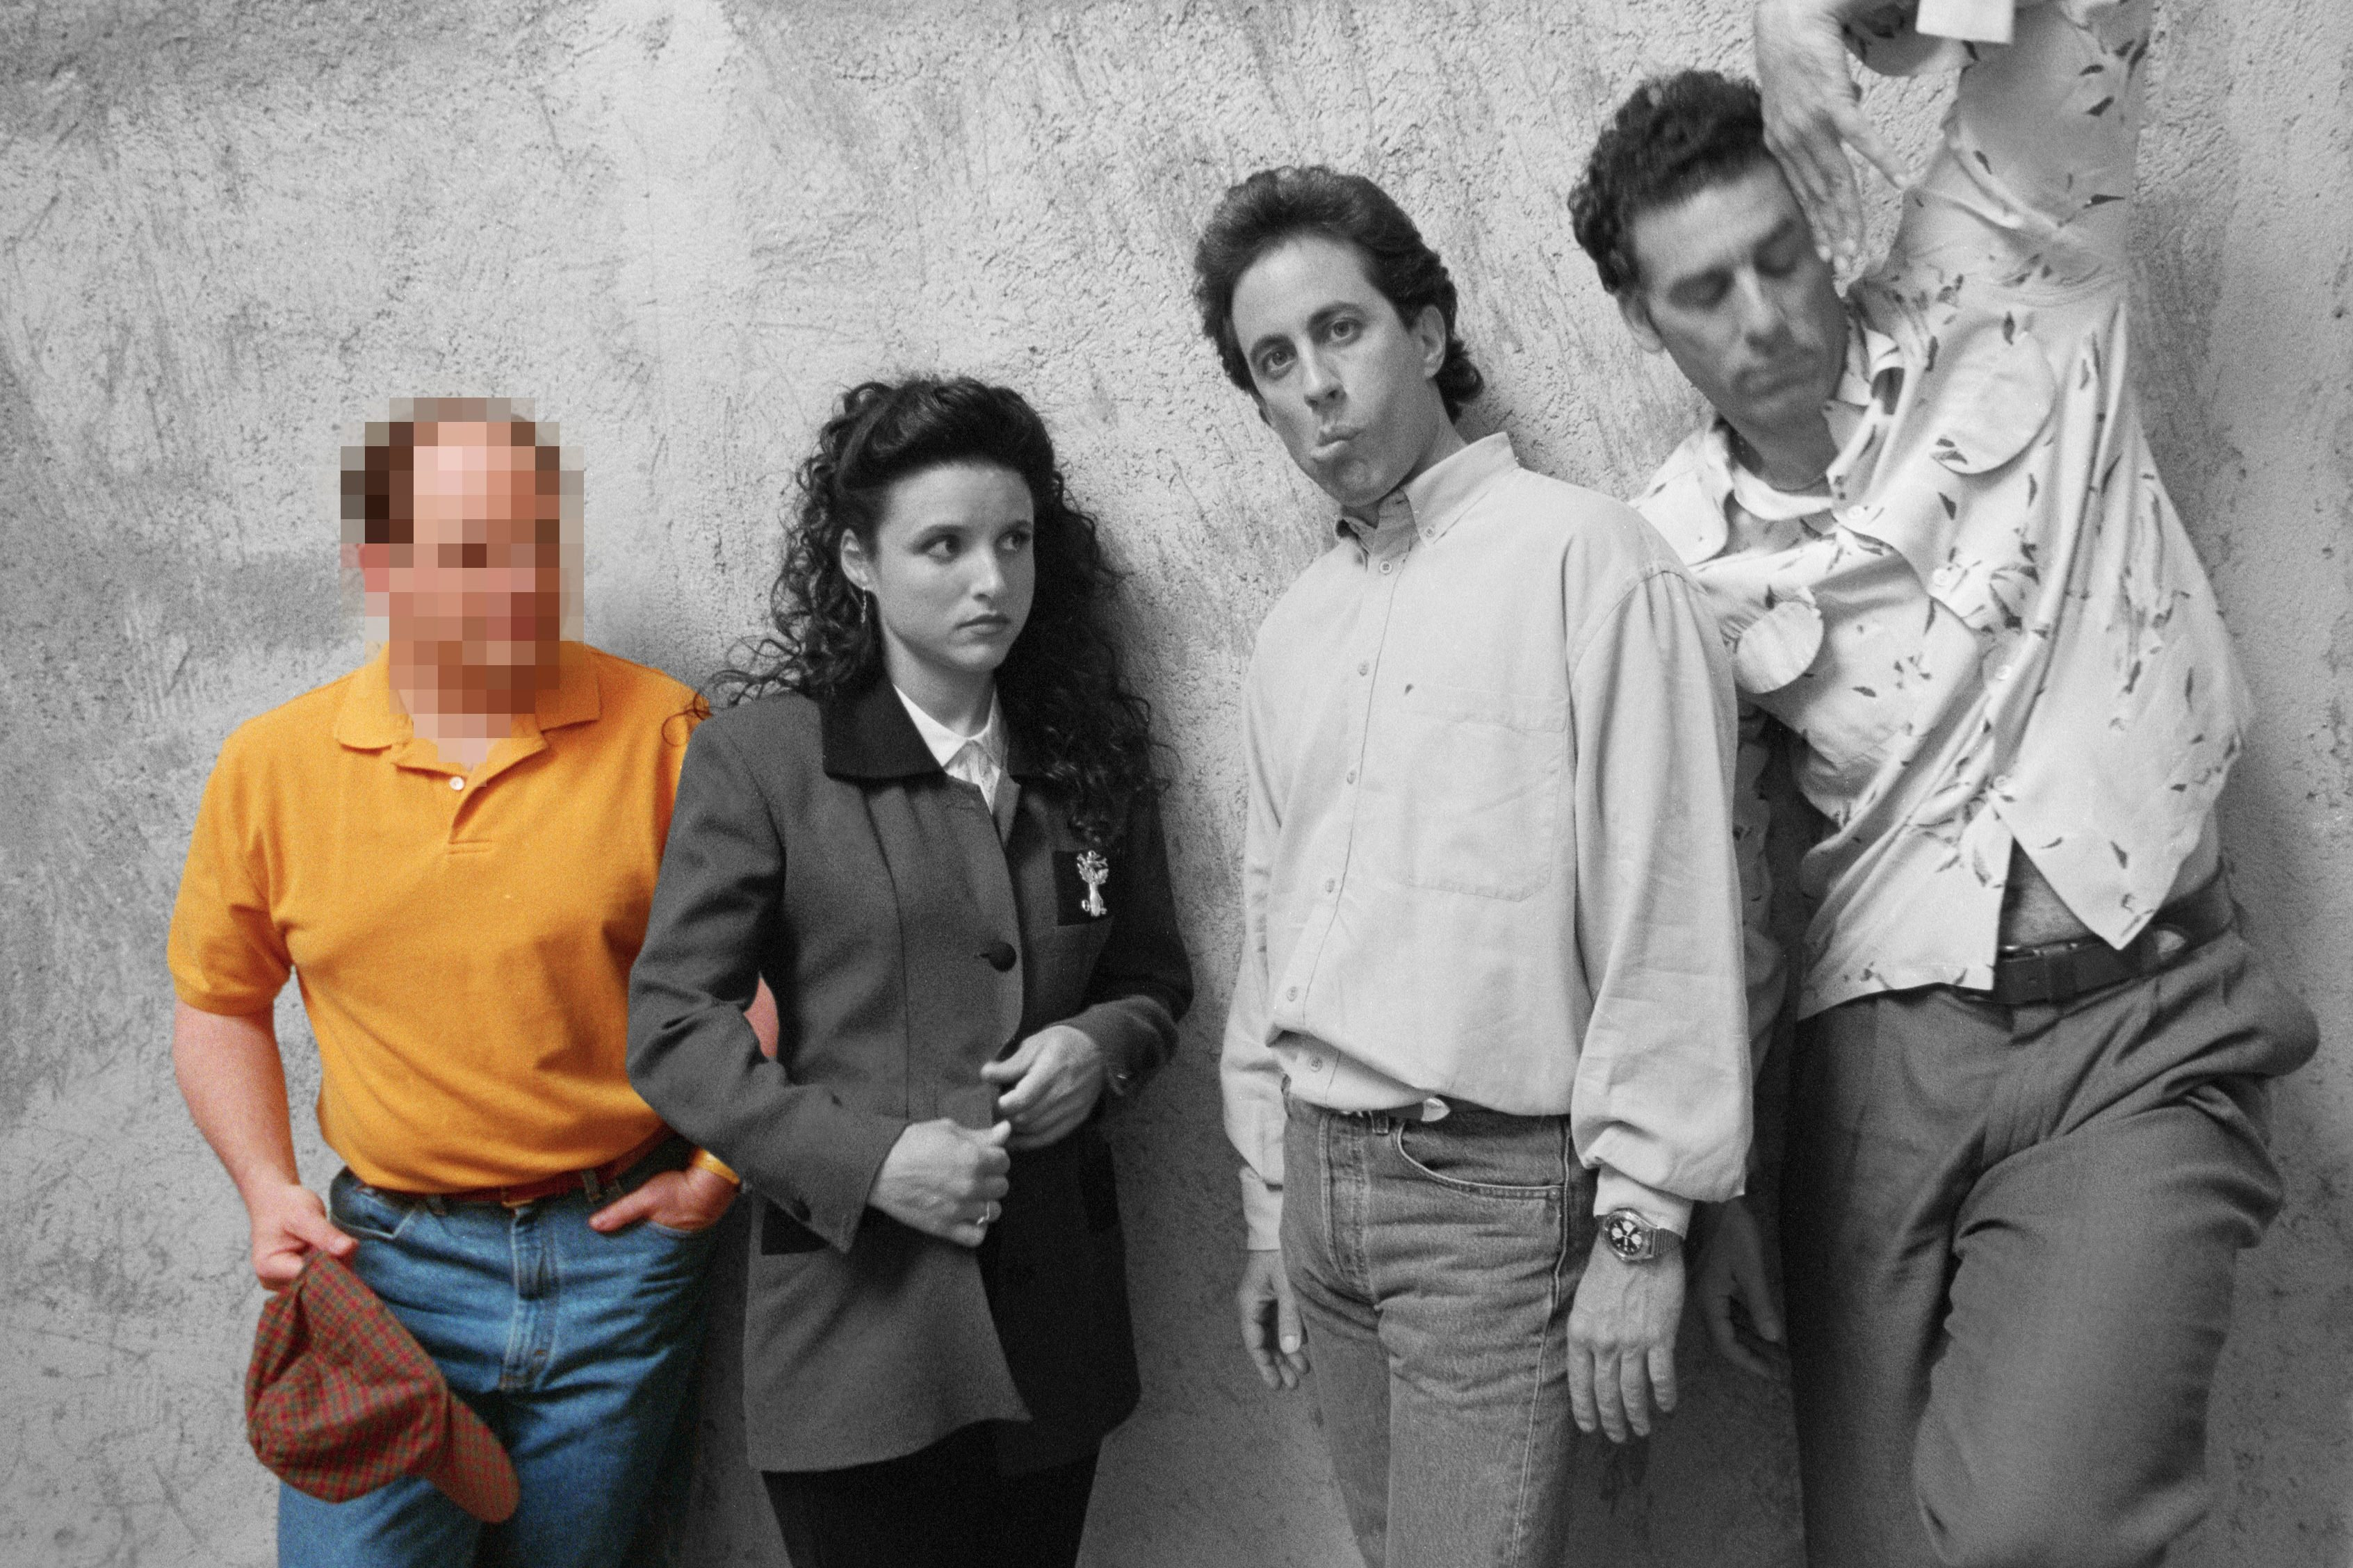 seinfeld cast with only george in color with blurred face